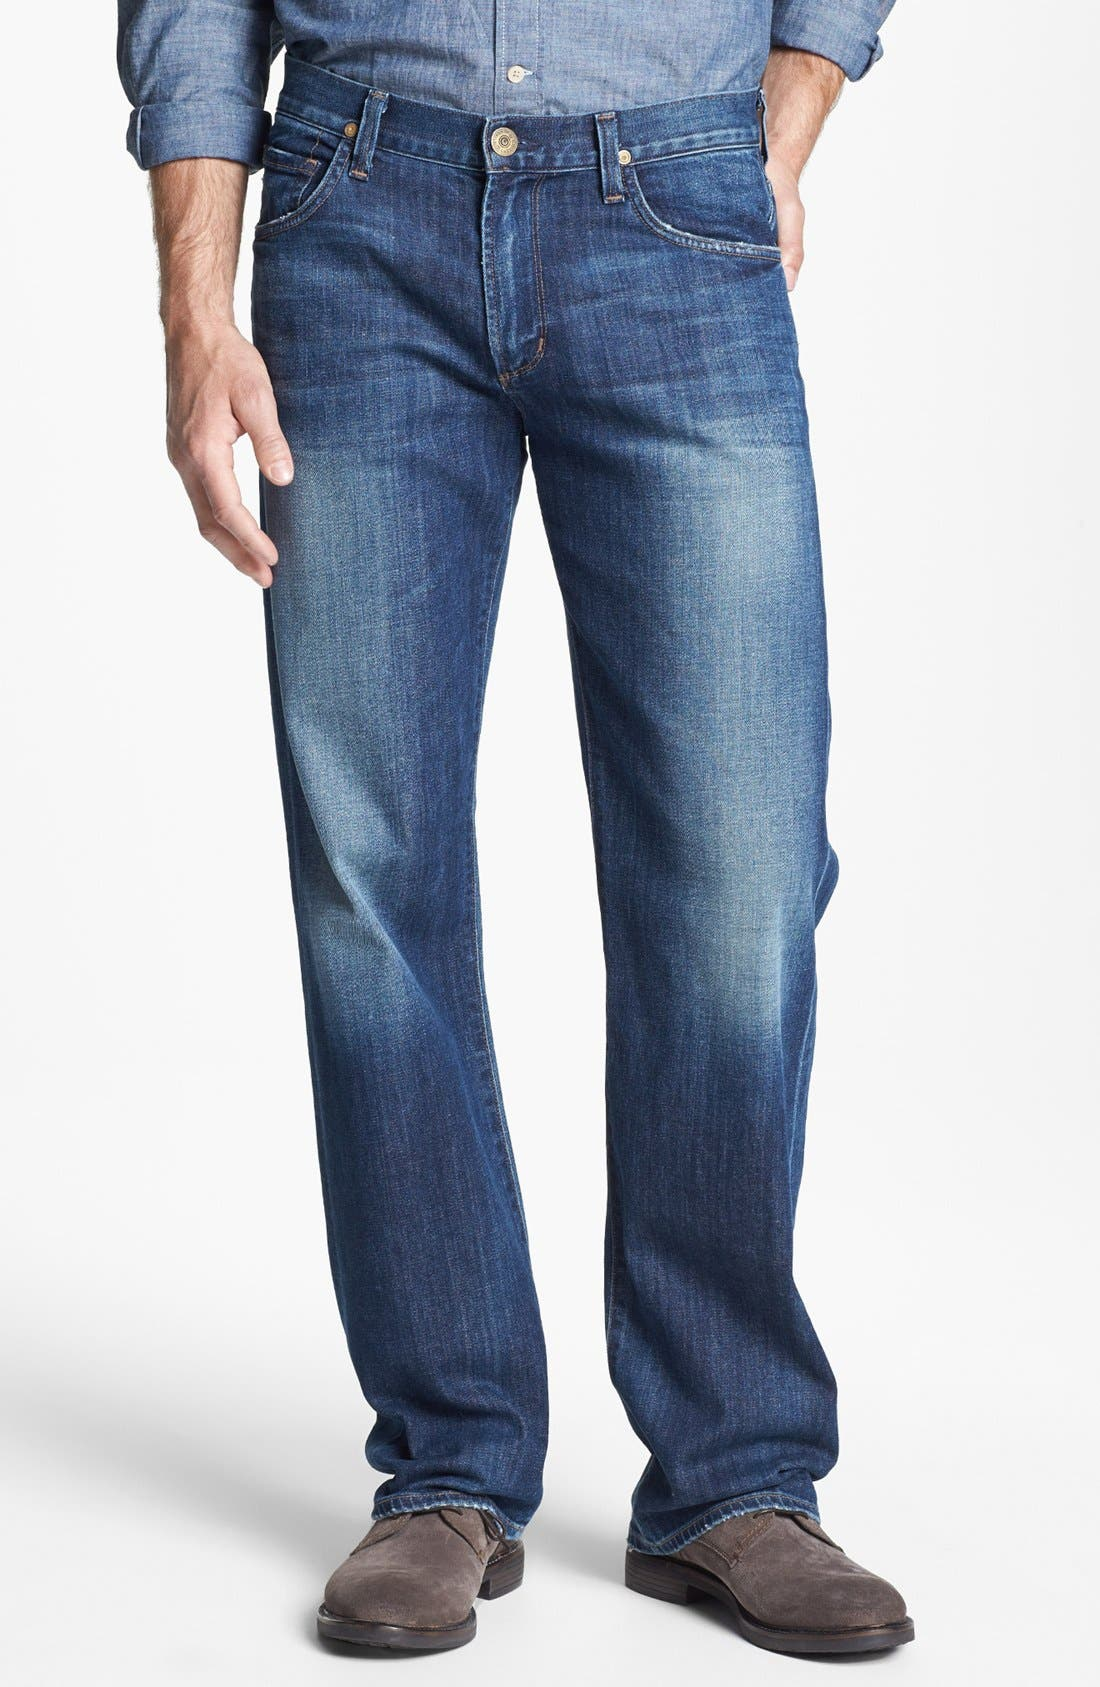 Alternate Image 1 Selected - Citizens of Humanity 'Evans' Relaxed Fit Jeans (Davis)